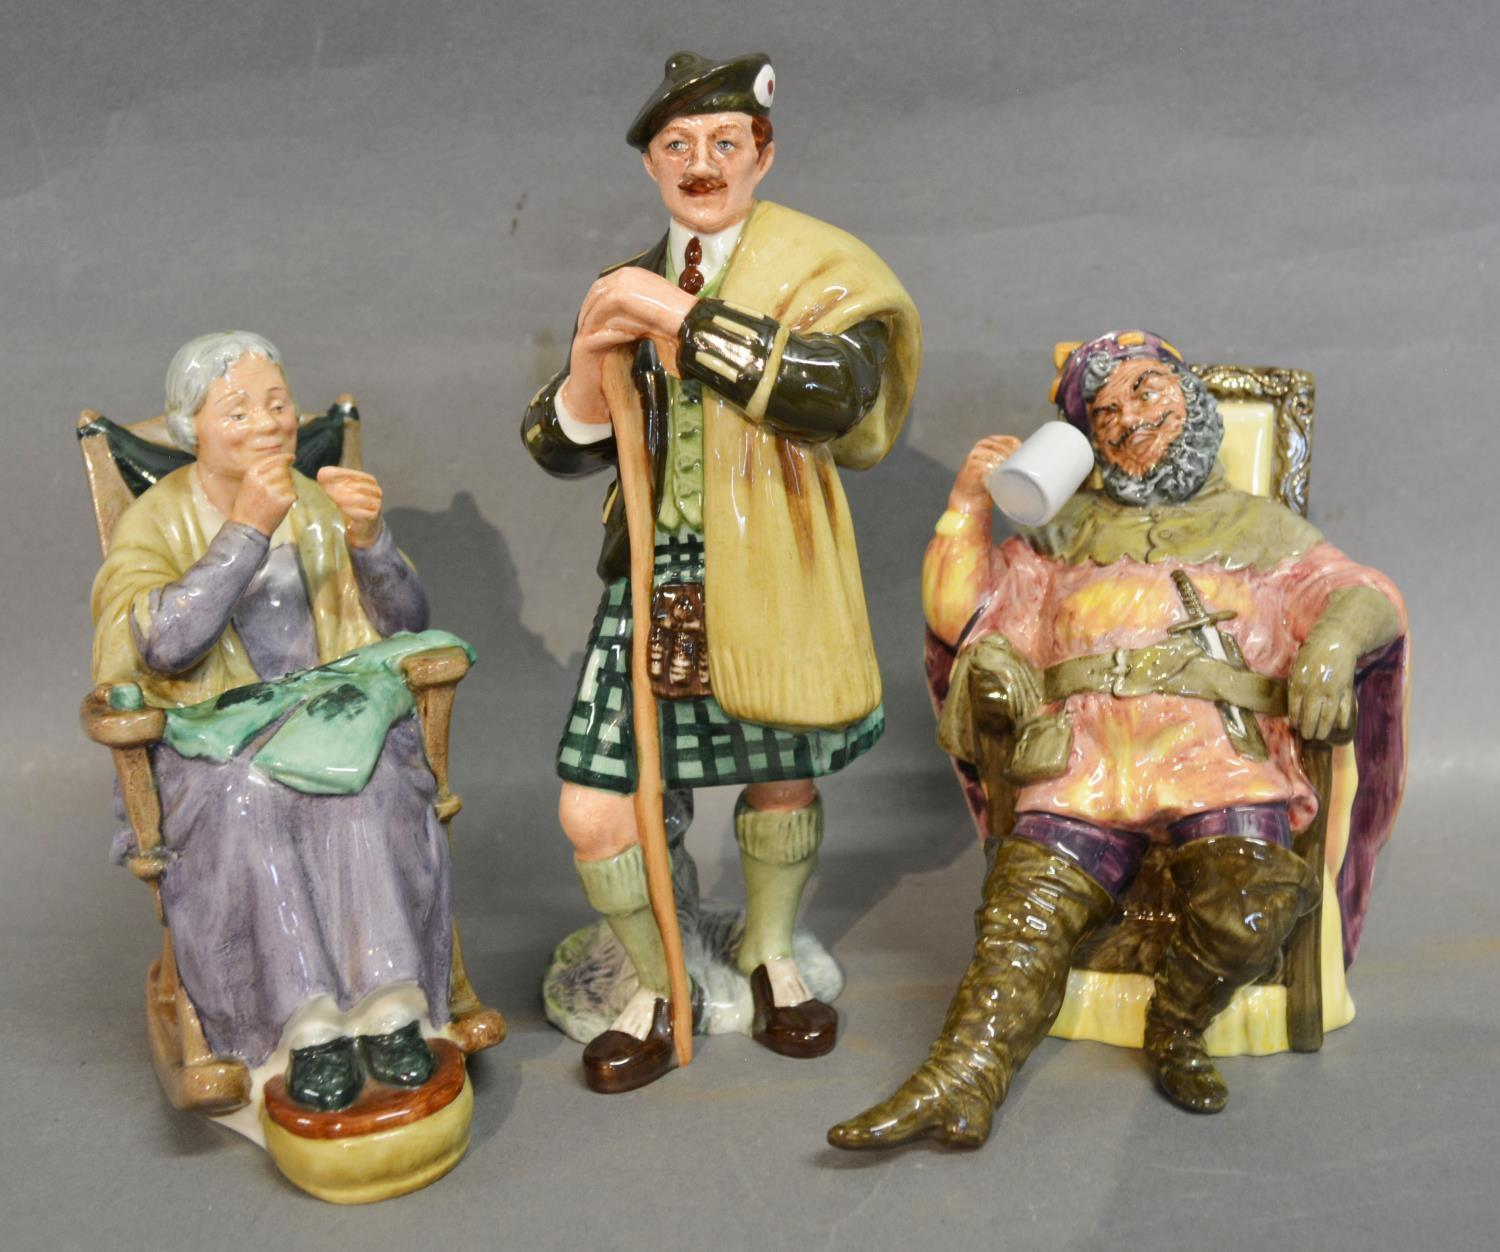 Lot 4 - A Royal Doulton Figure 'The Laird' HN Number 2361 together with another Royal Doulton Figure 'A